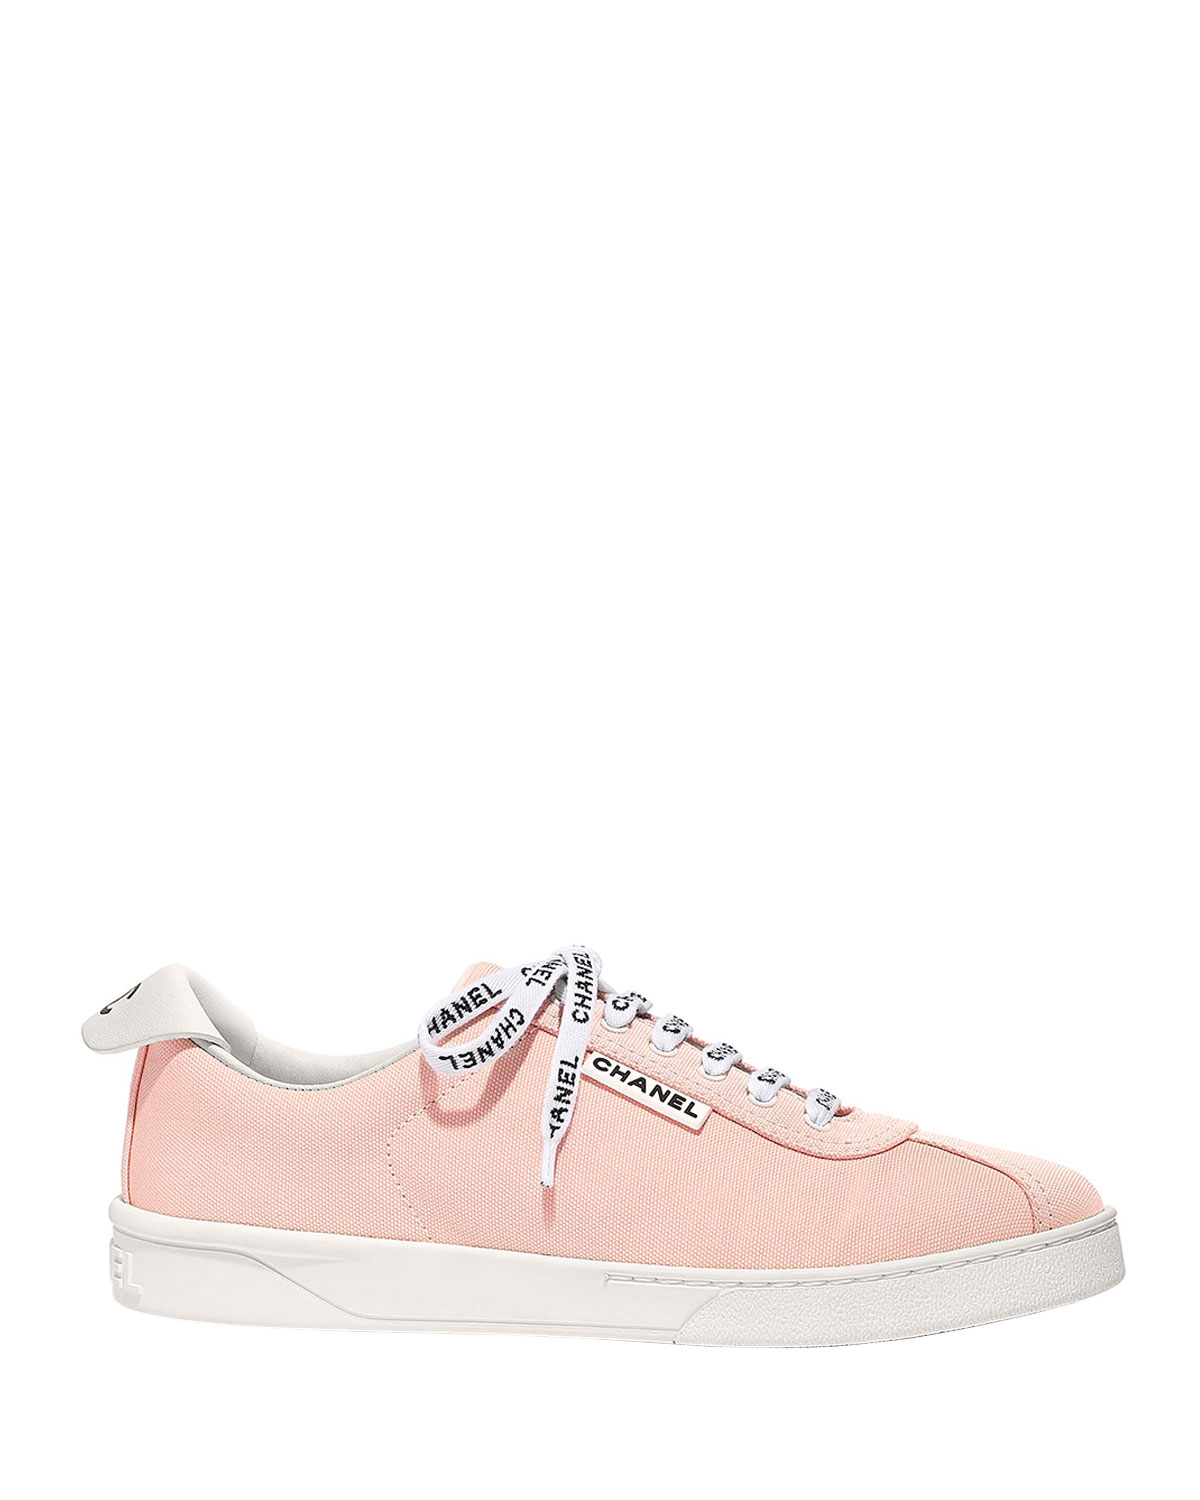 1285038b4be CHANEL Sneakers